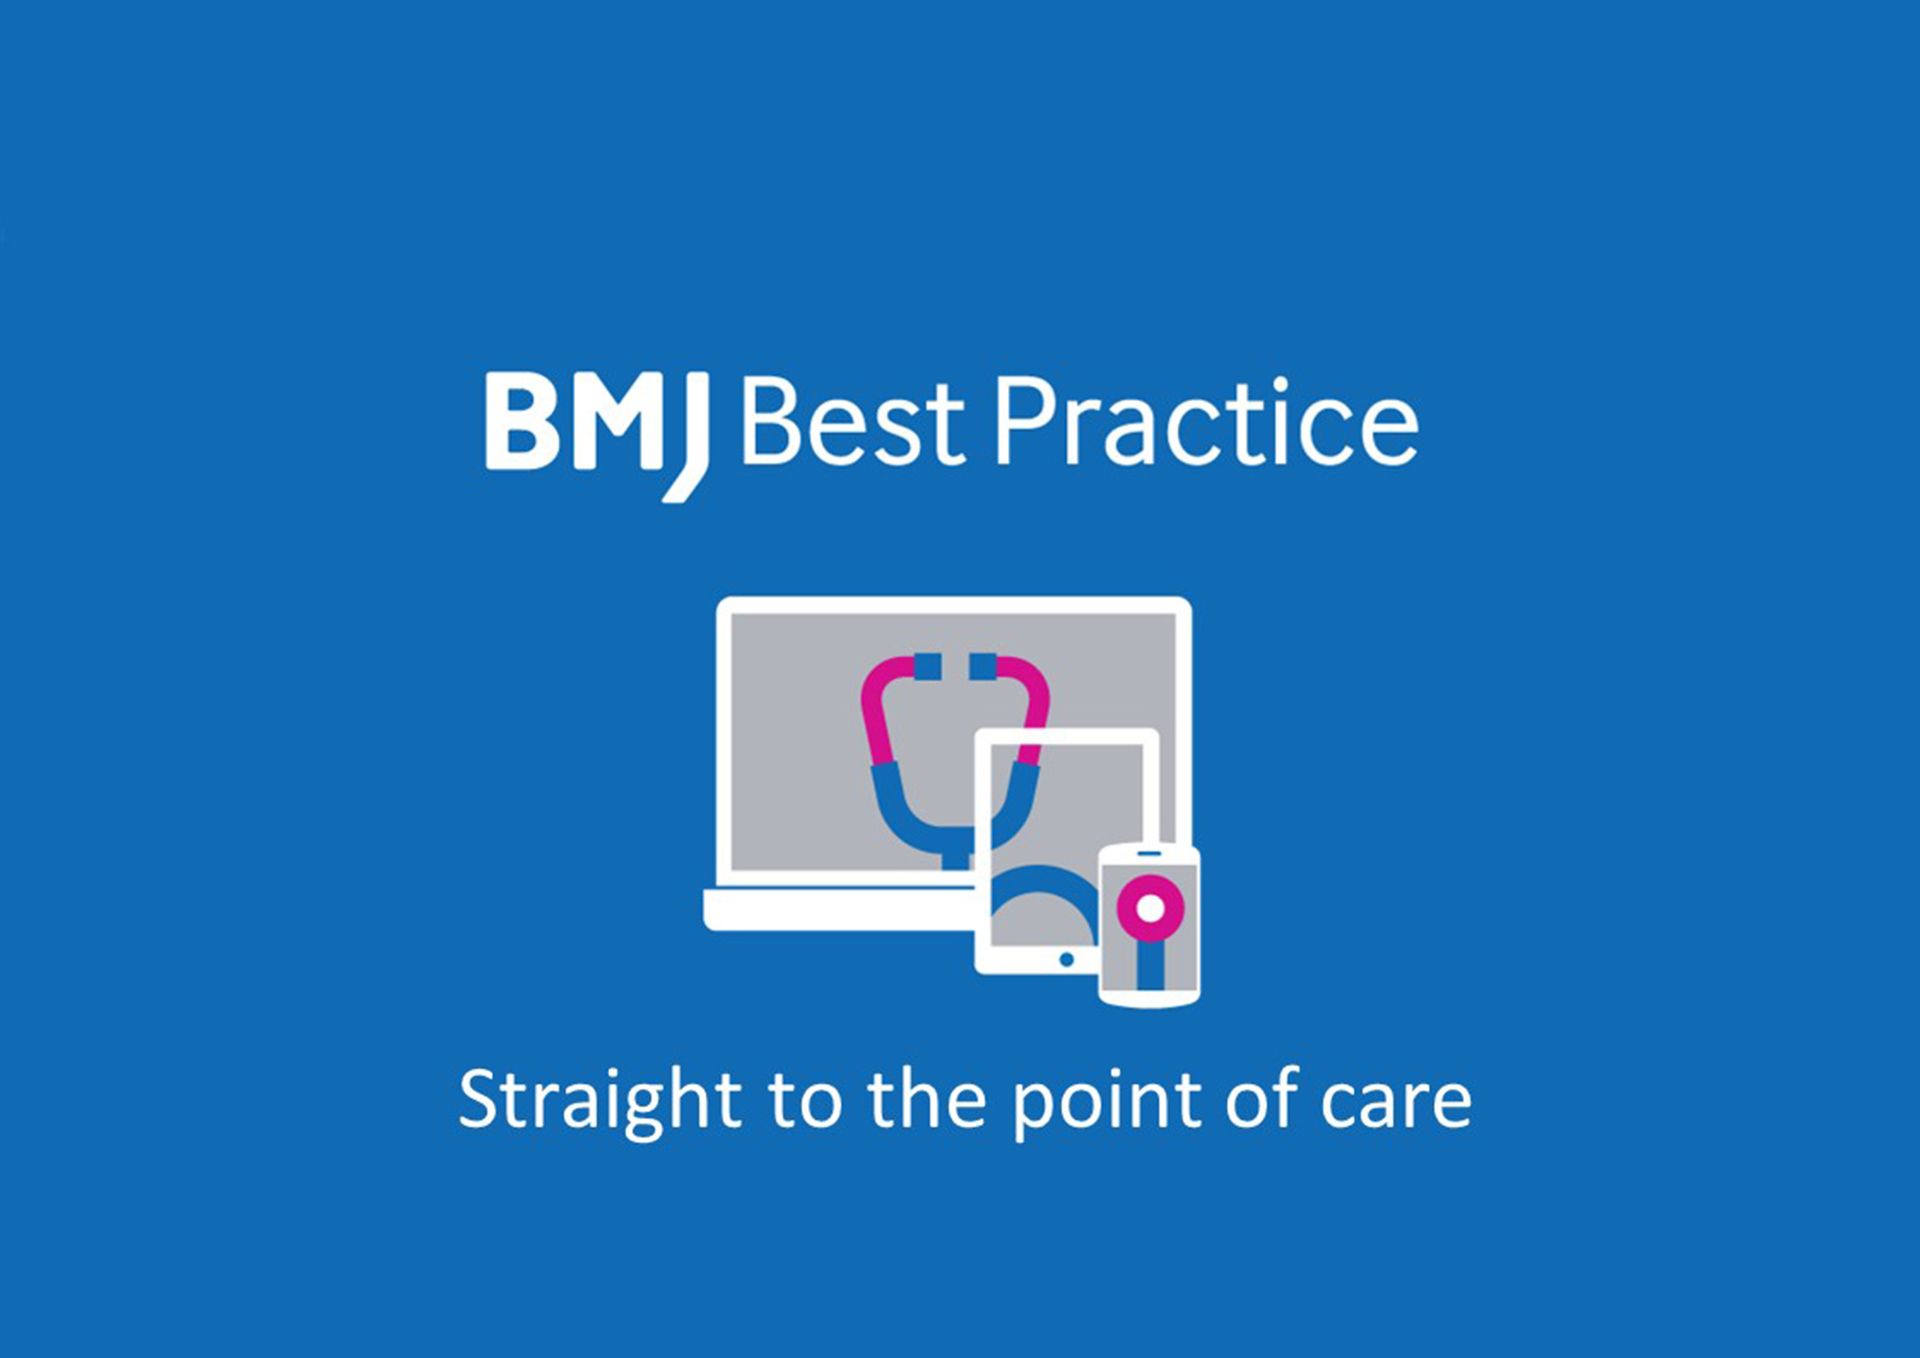 Introducing the BMJ Best Practice